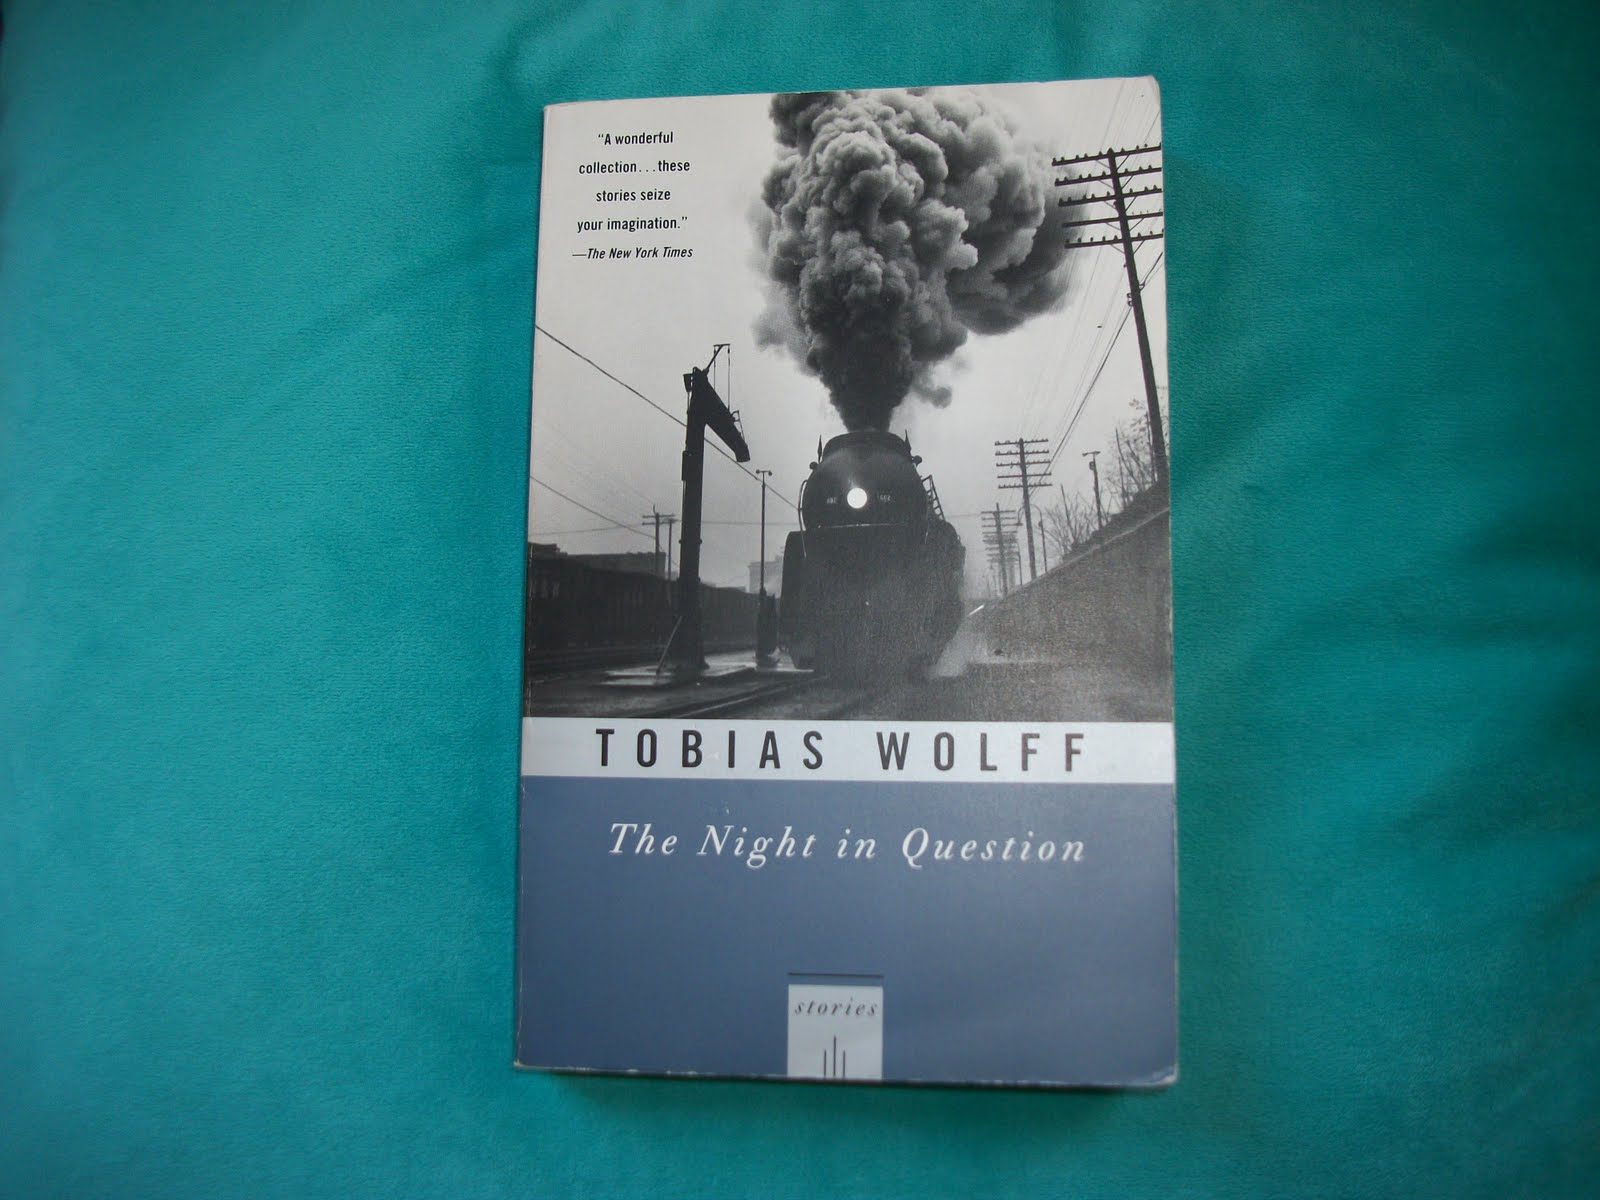 tobias wolff the chain The stories of tobias wolff as in the chain, where an attack by a vicious dog precipitates an act of revenge that backfires.